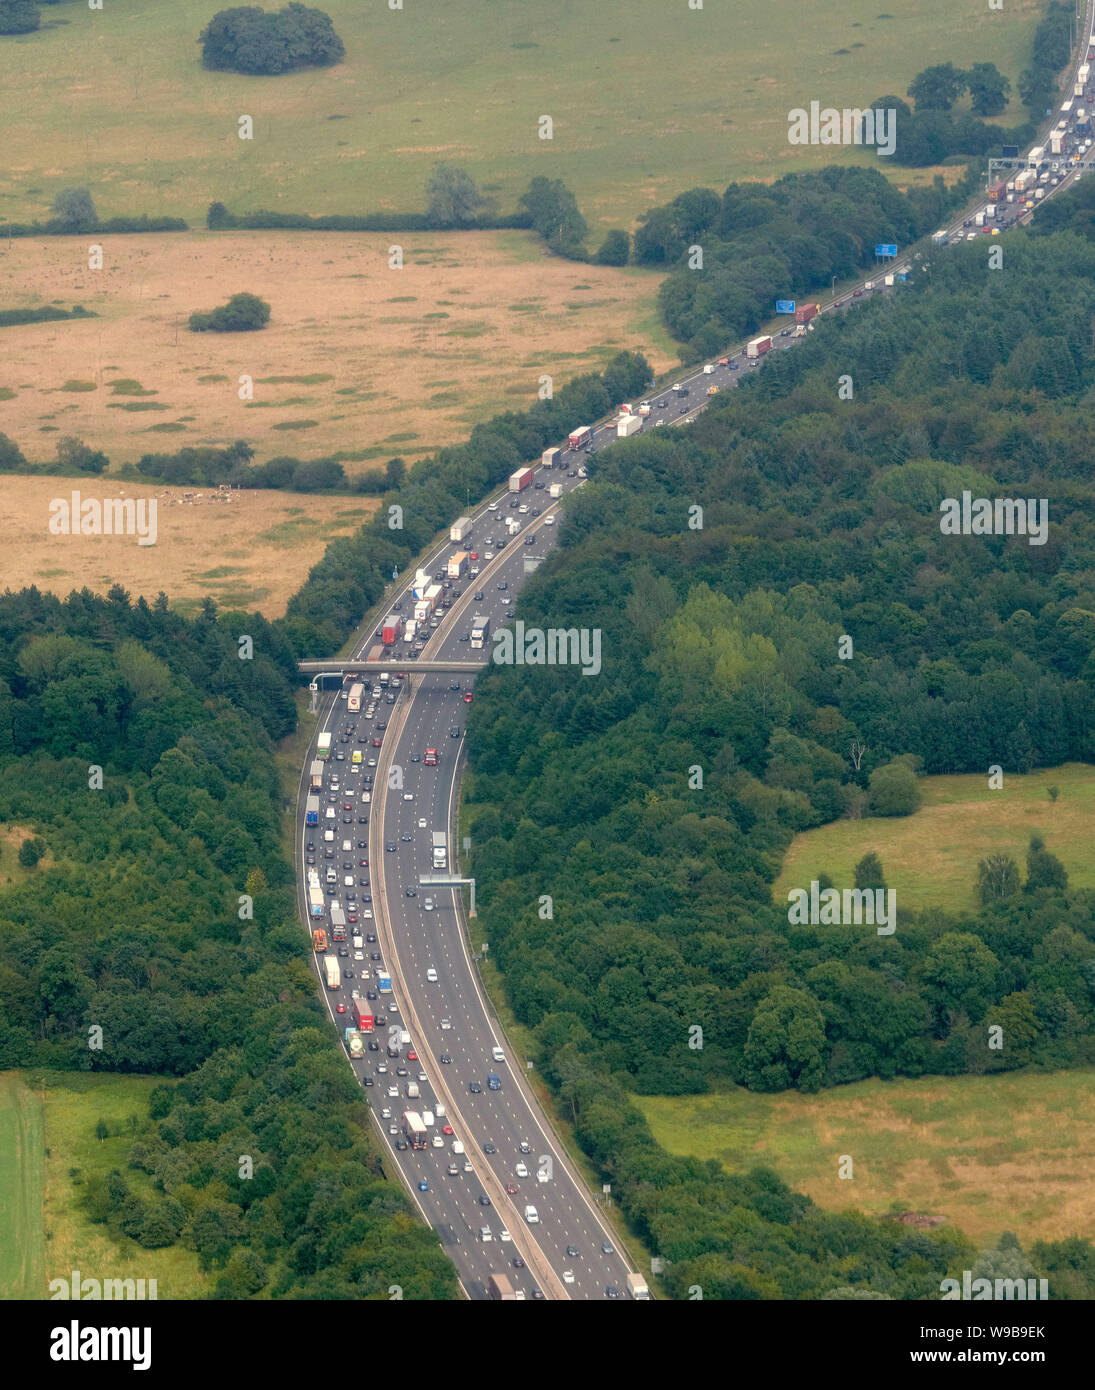 An aerial view of heavy traffic on the M25, Essex, South East England, UK Stock Photo